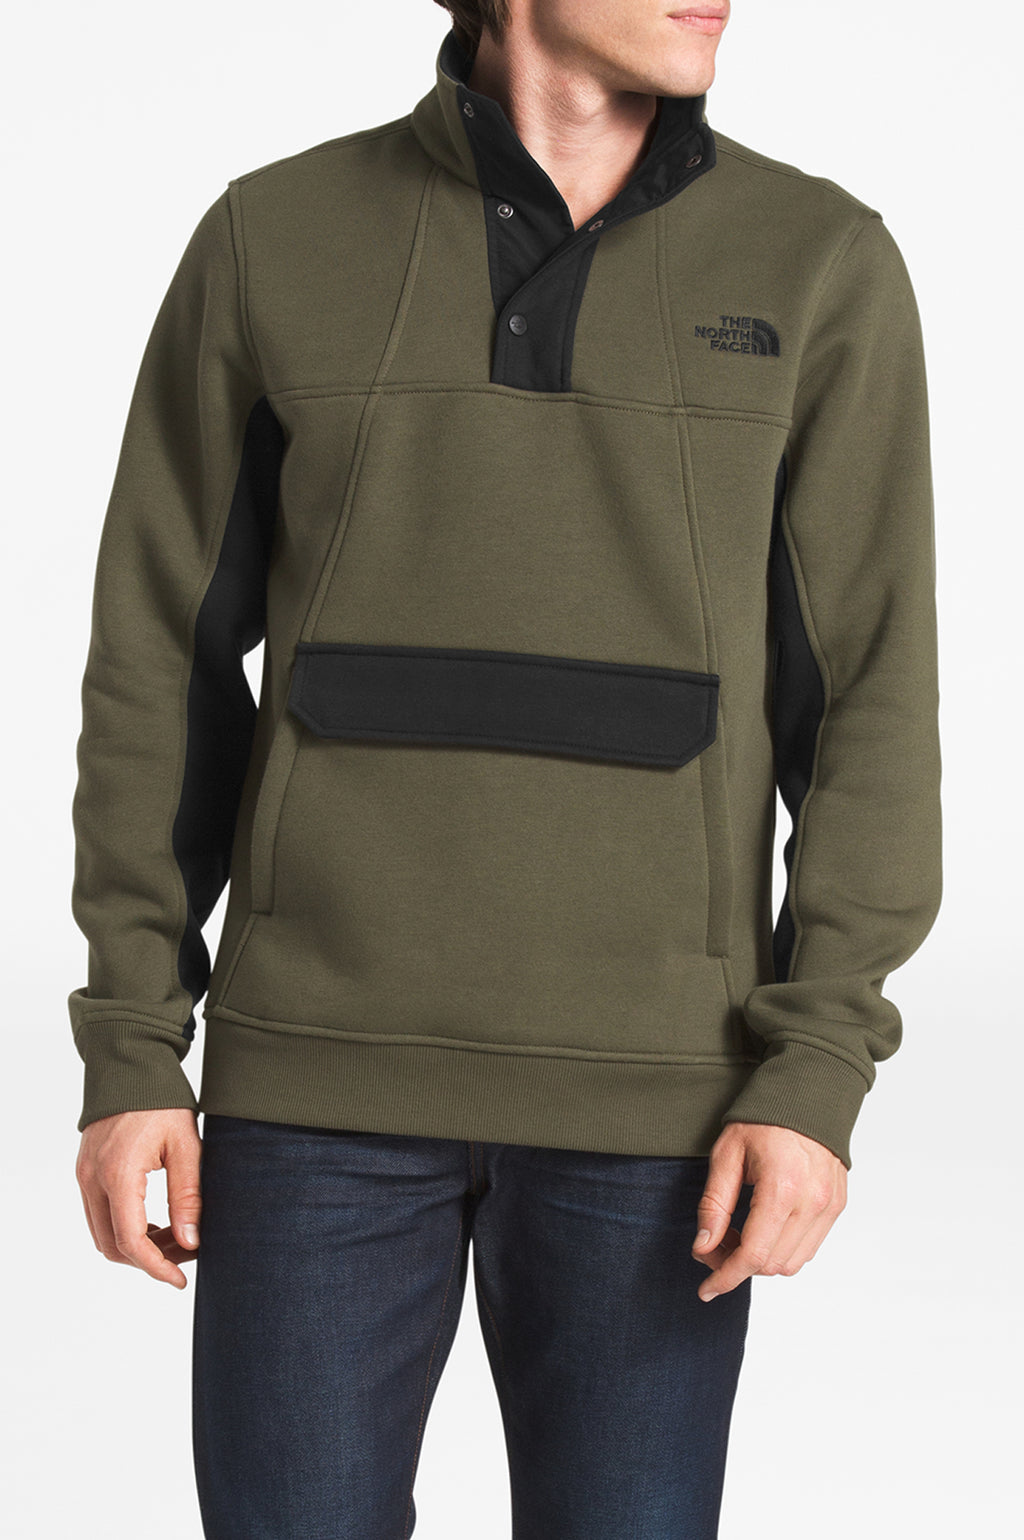 THE NORTH FACE MENS ALPHABET CITY FLEECE PULLOVER